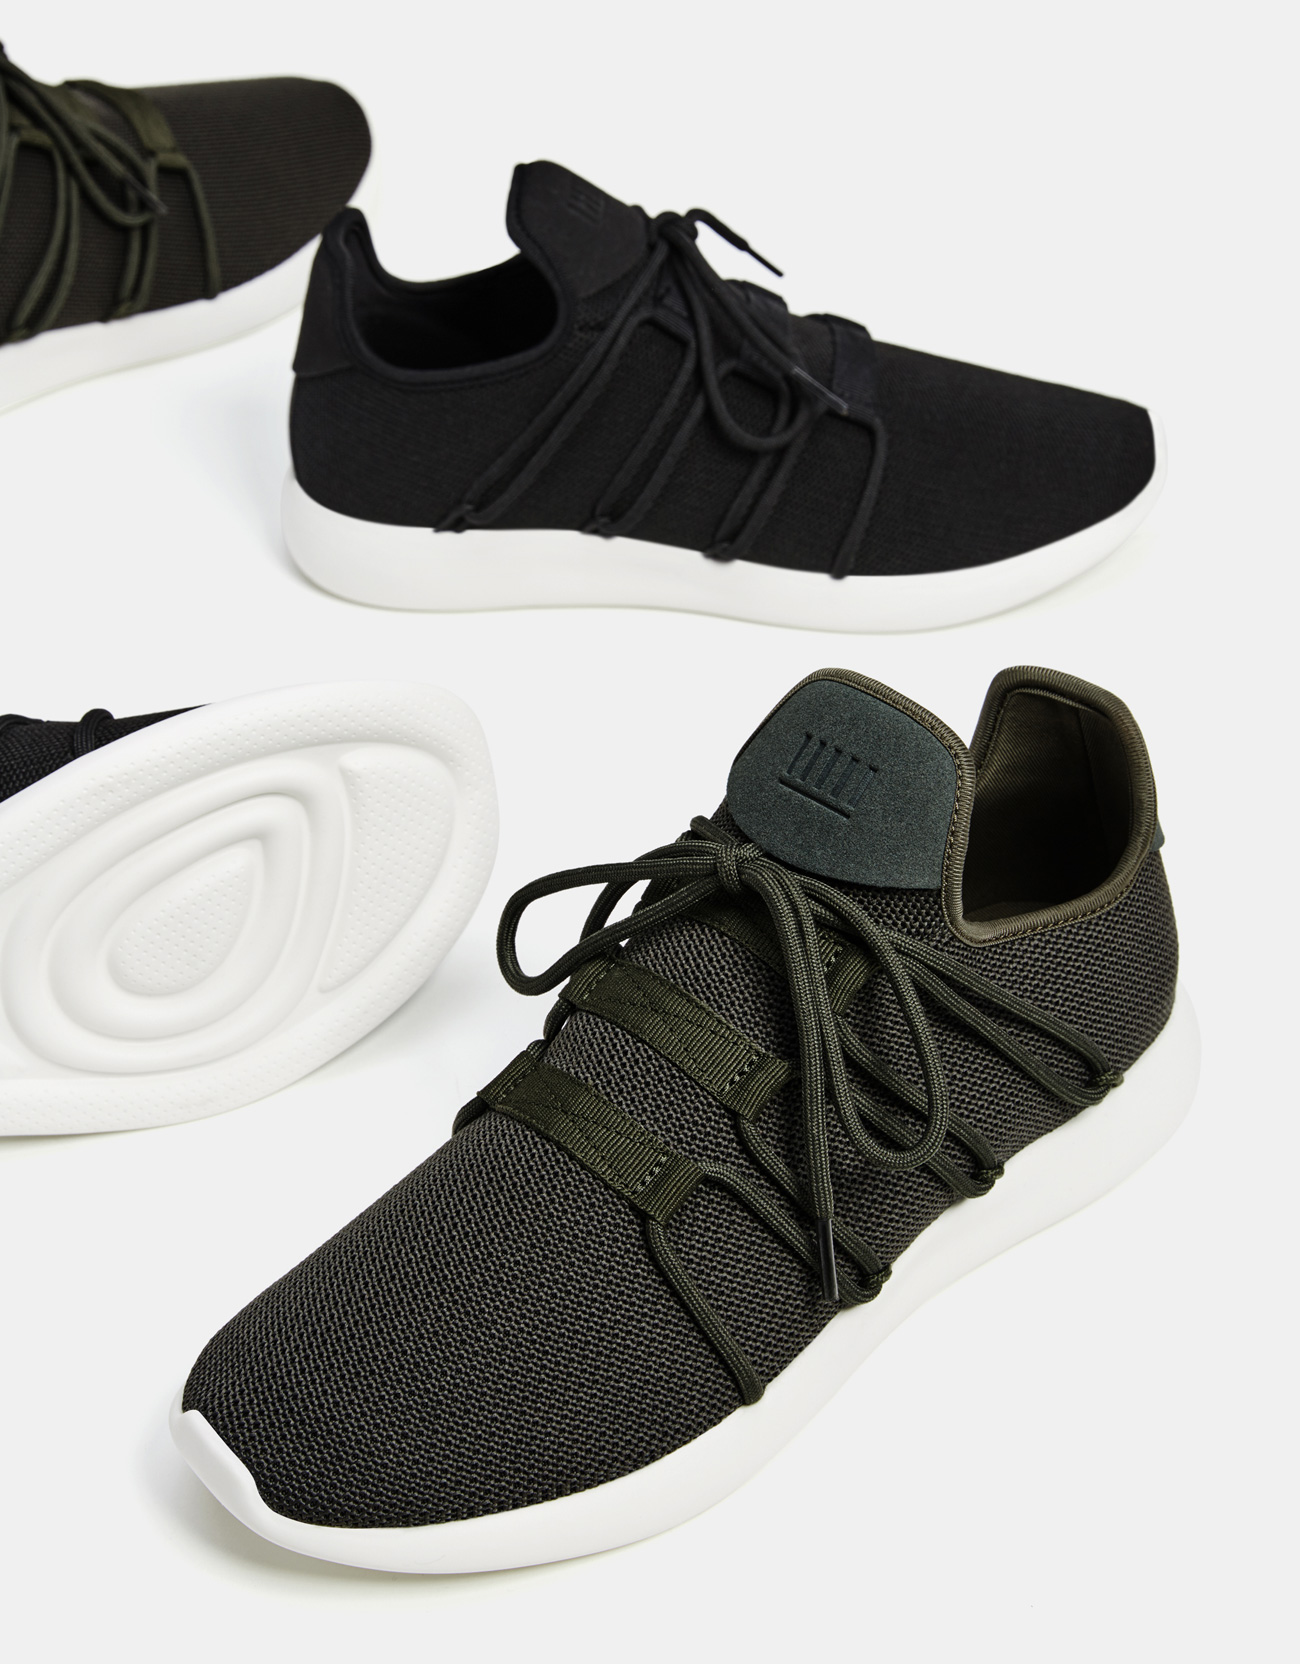 Men's sock-style lace-up sneakers ...